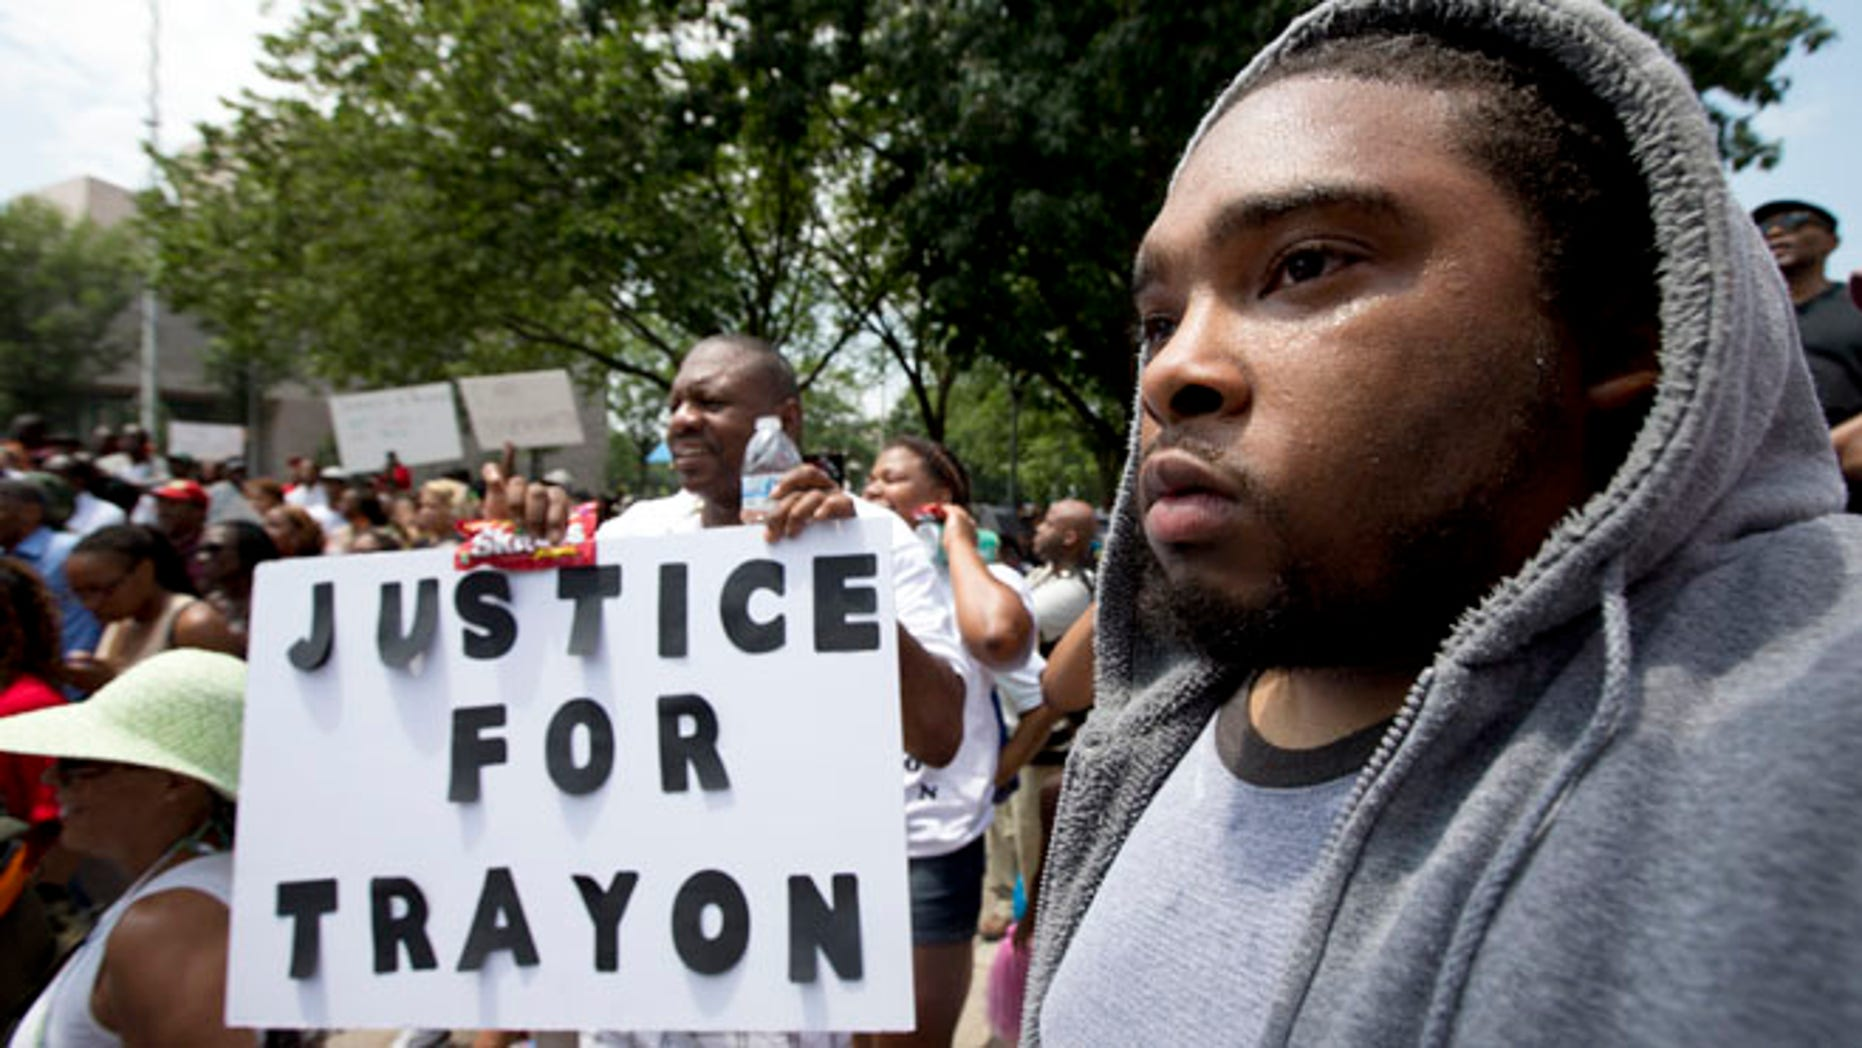 July 20, 2013: Protesters demonstrate over the George Zimmerman verdict in front of a federal courthouse in Washington.